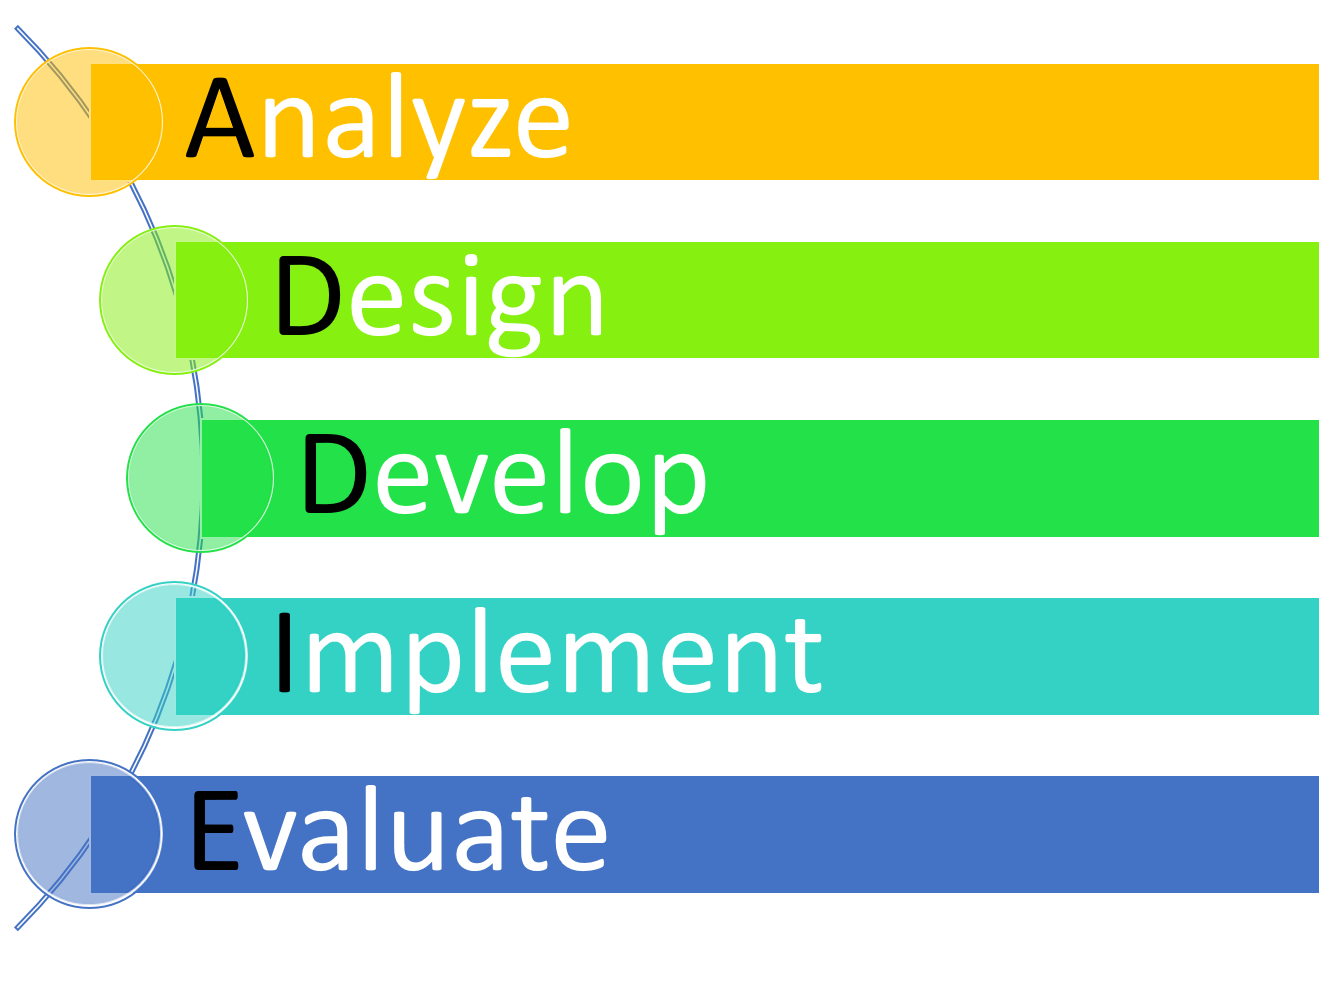 """A five-step arch leading down from """"Analyze"""", next to """"Design"""", next to """"Develop"""", next to """"Implement"""", and finally to """"evaluate""""."""